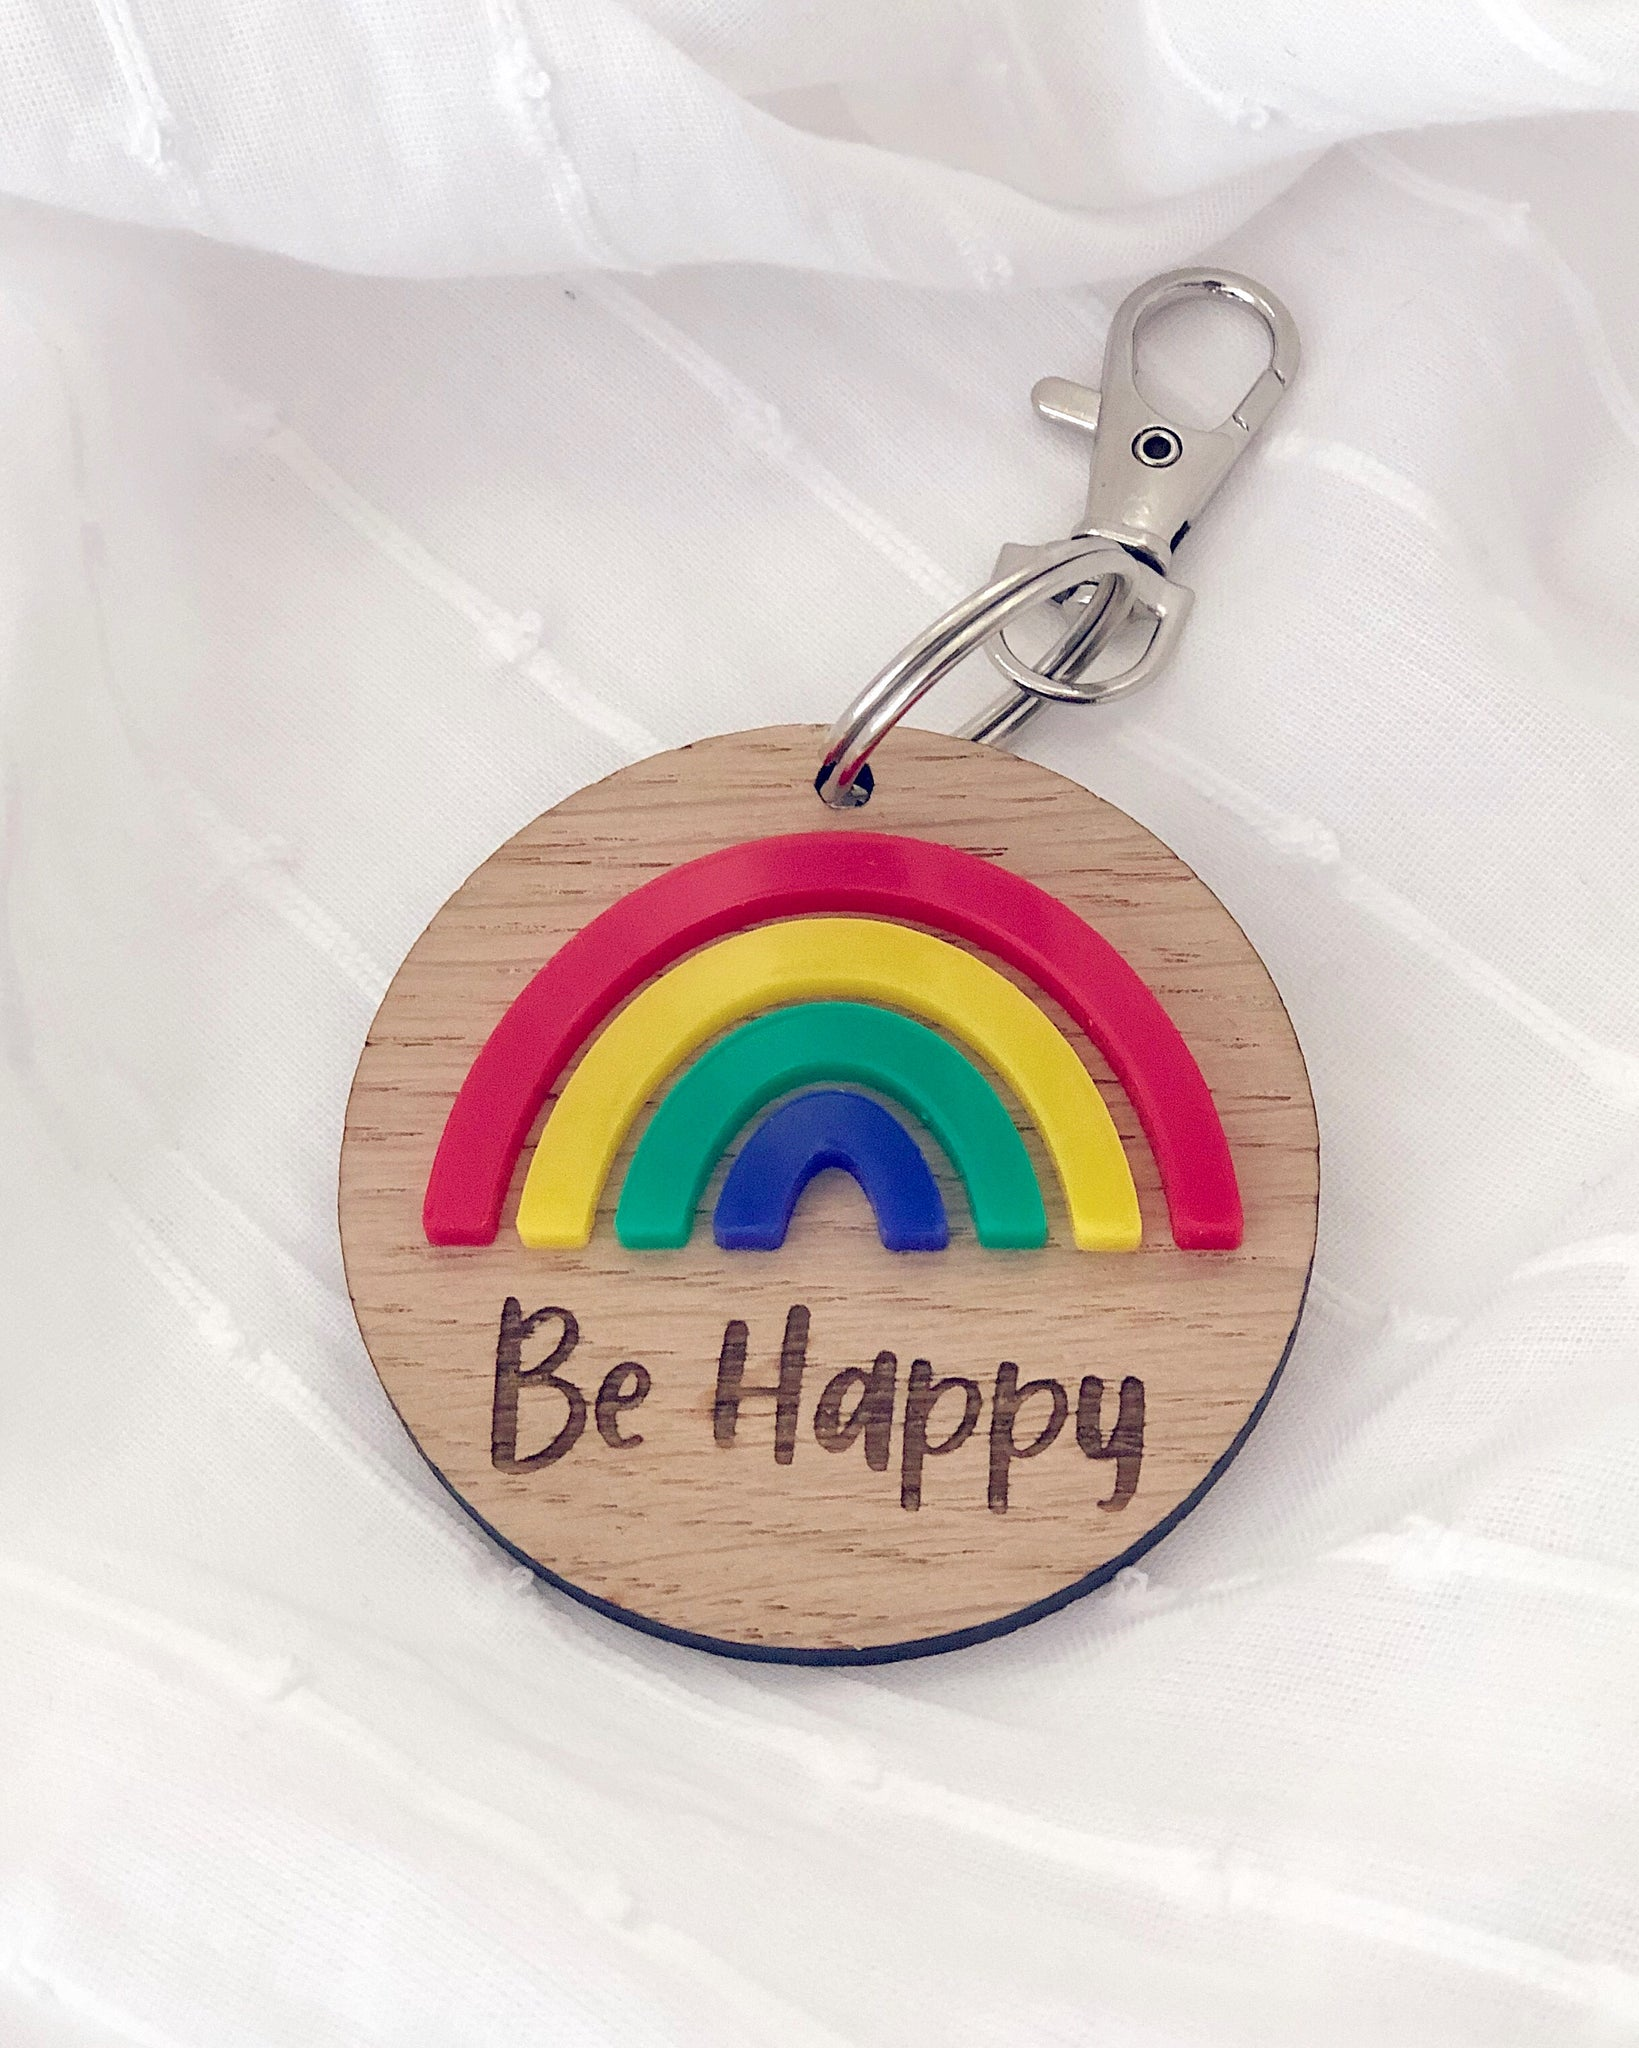 Wooden key ring with colourful rainbow and be happy engraved text